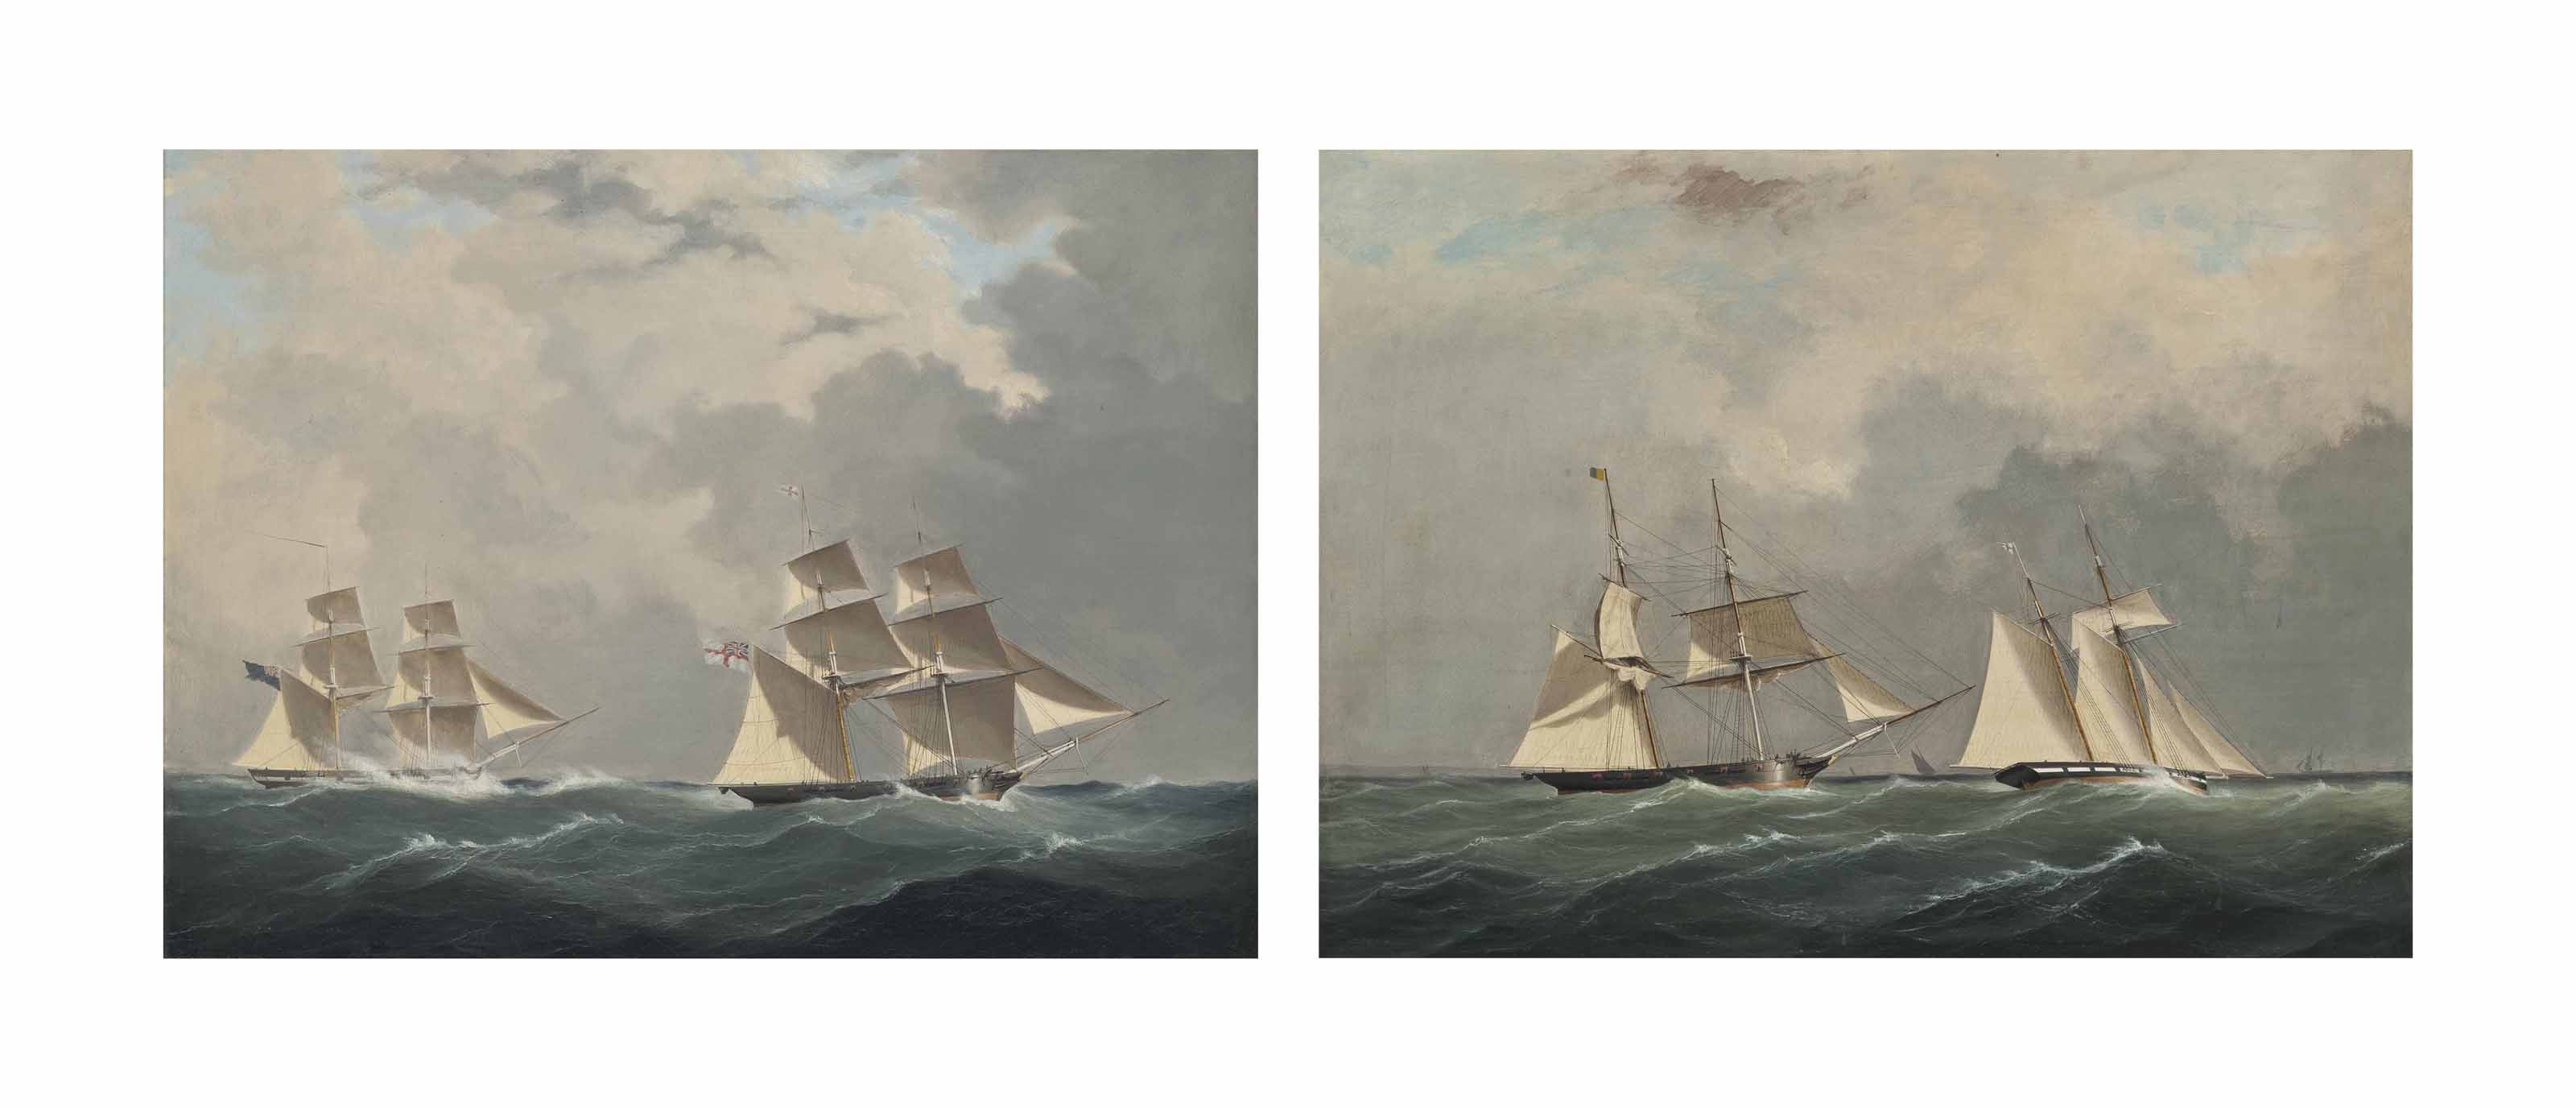 The Royal Navy brig H.M.S. Pantaloon and Waterwitch of the Royal Yacht Squadron in close quarters at sea; and The Royal Yacht Squadron's Waterwitch and The Royal Navy brig H.M.S. Pantaloon in coastal waters in a stiff breeze (both illustrated)